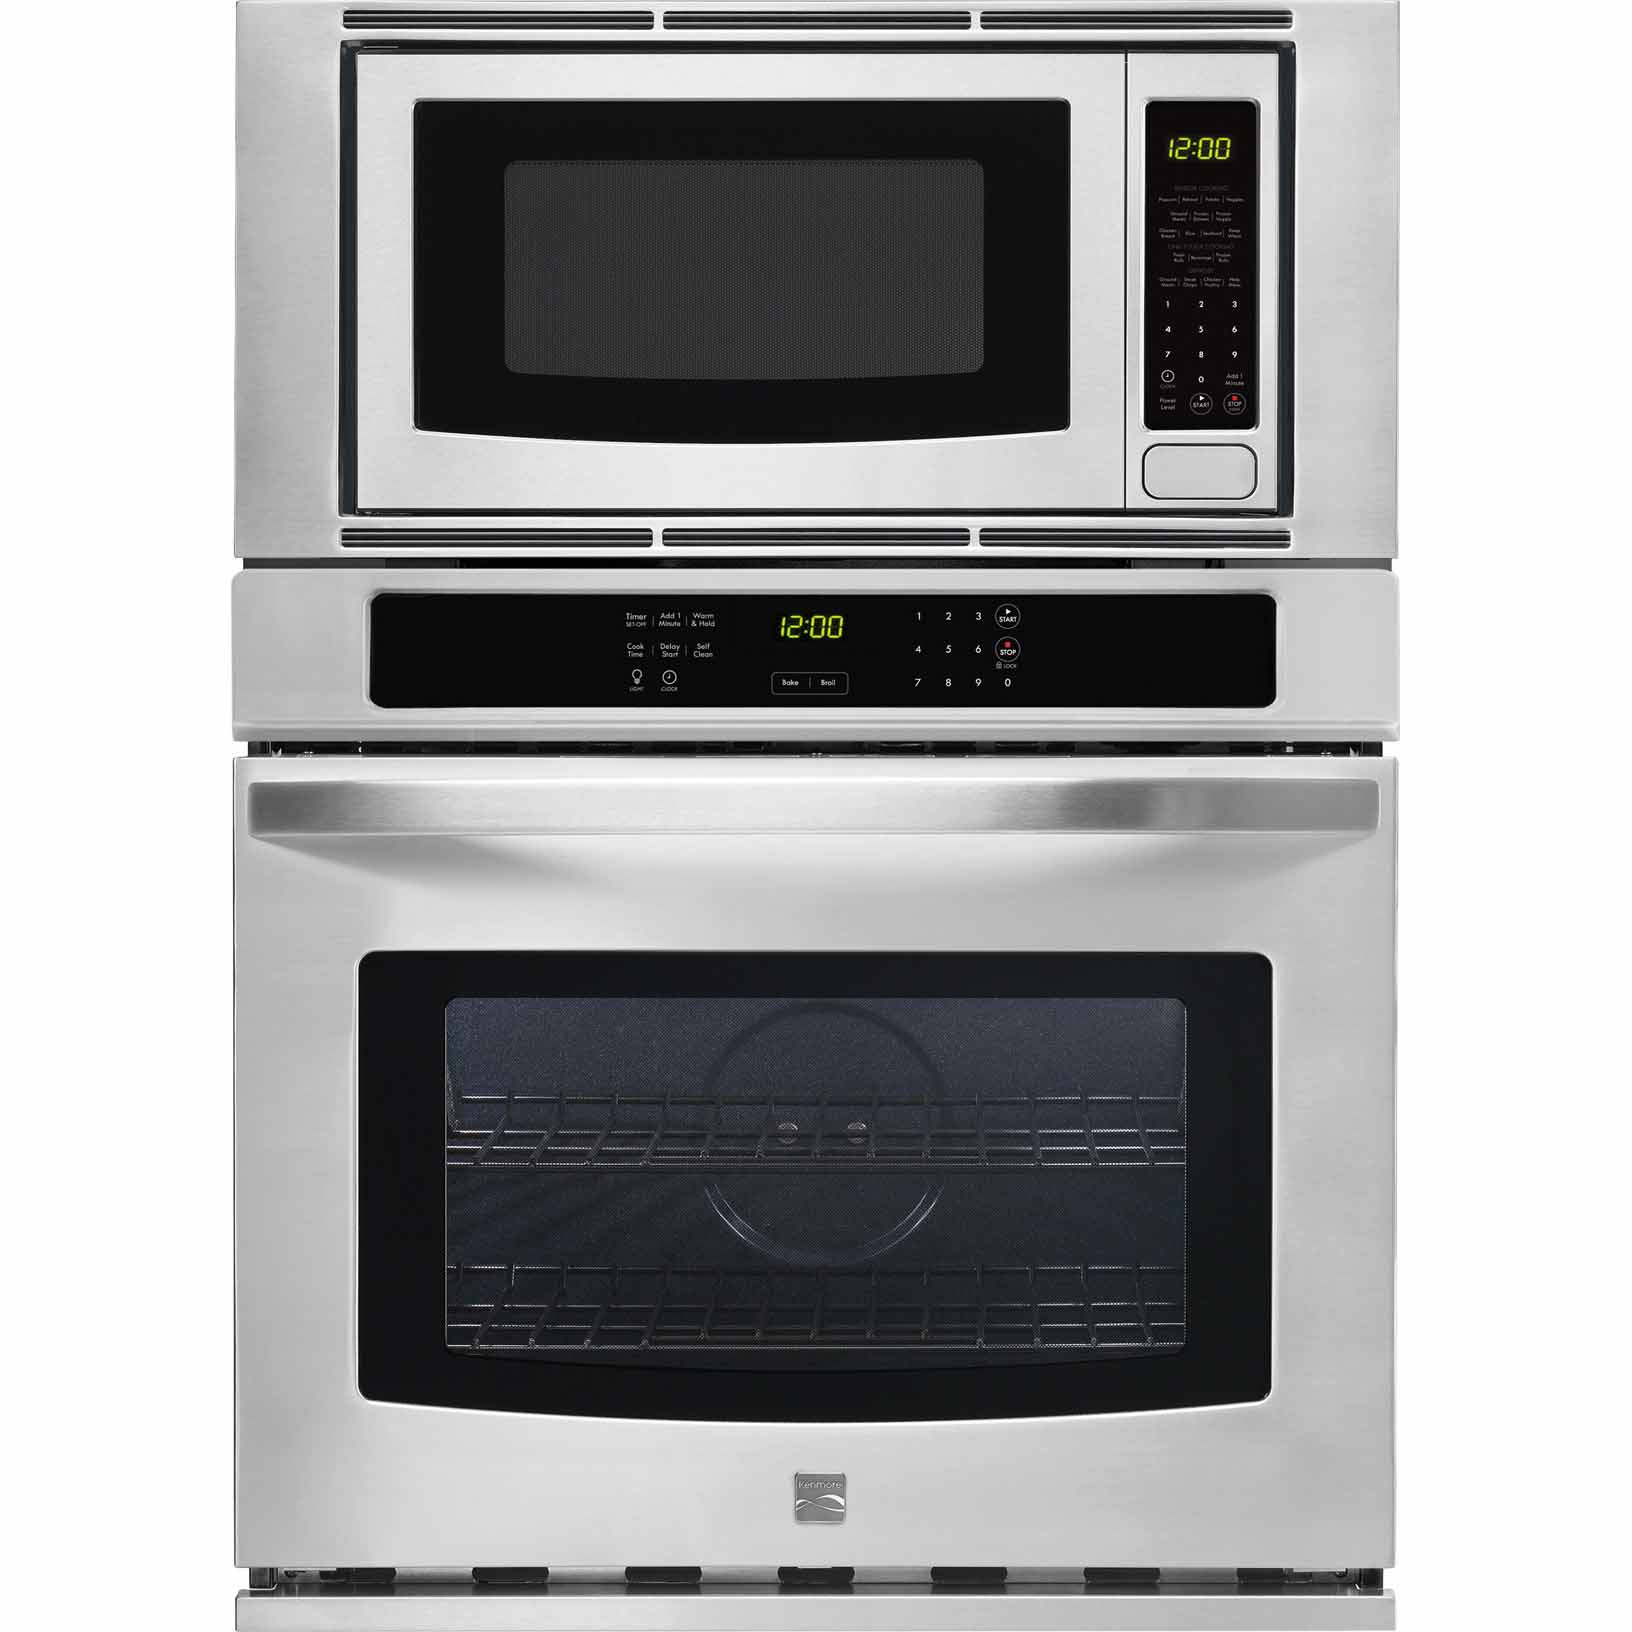 combo oven microwave electrical wiring electrical wiring illustrated with microwave oven diagram besides whirlpool wall oven microwave [ 1632 x 1632 Pixel ]